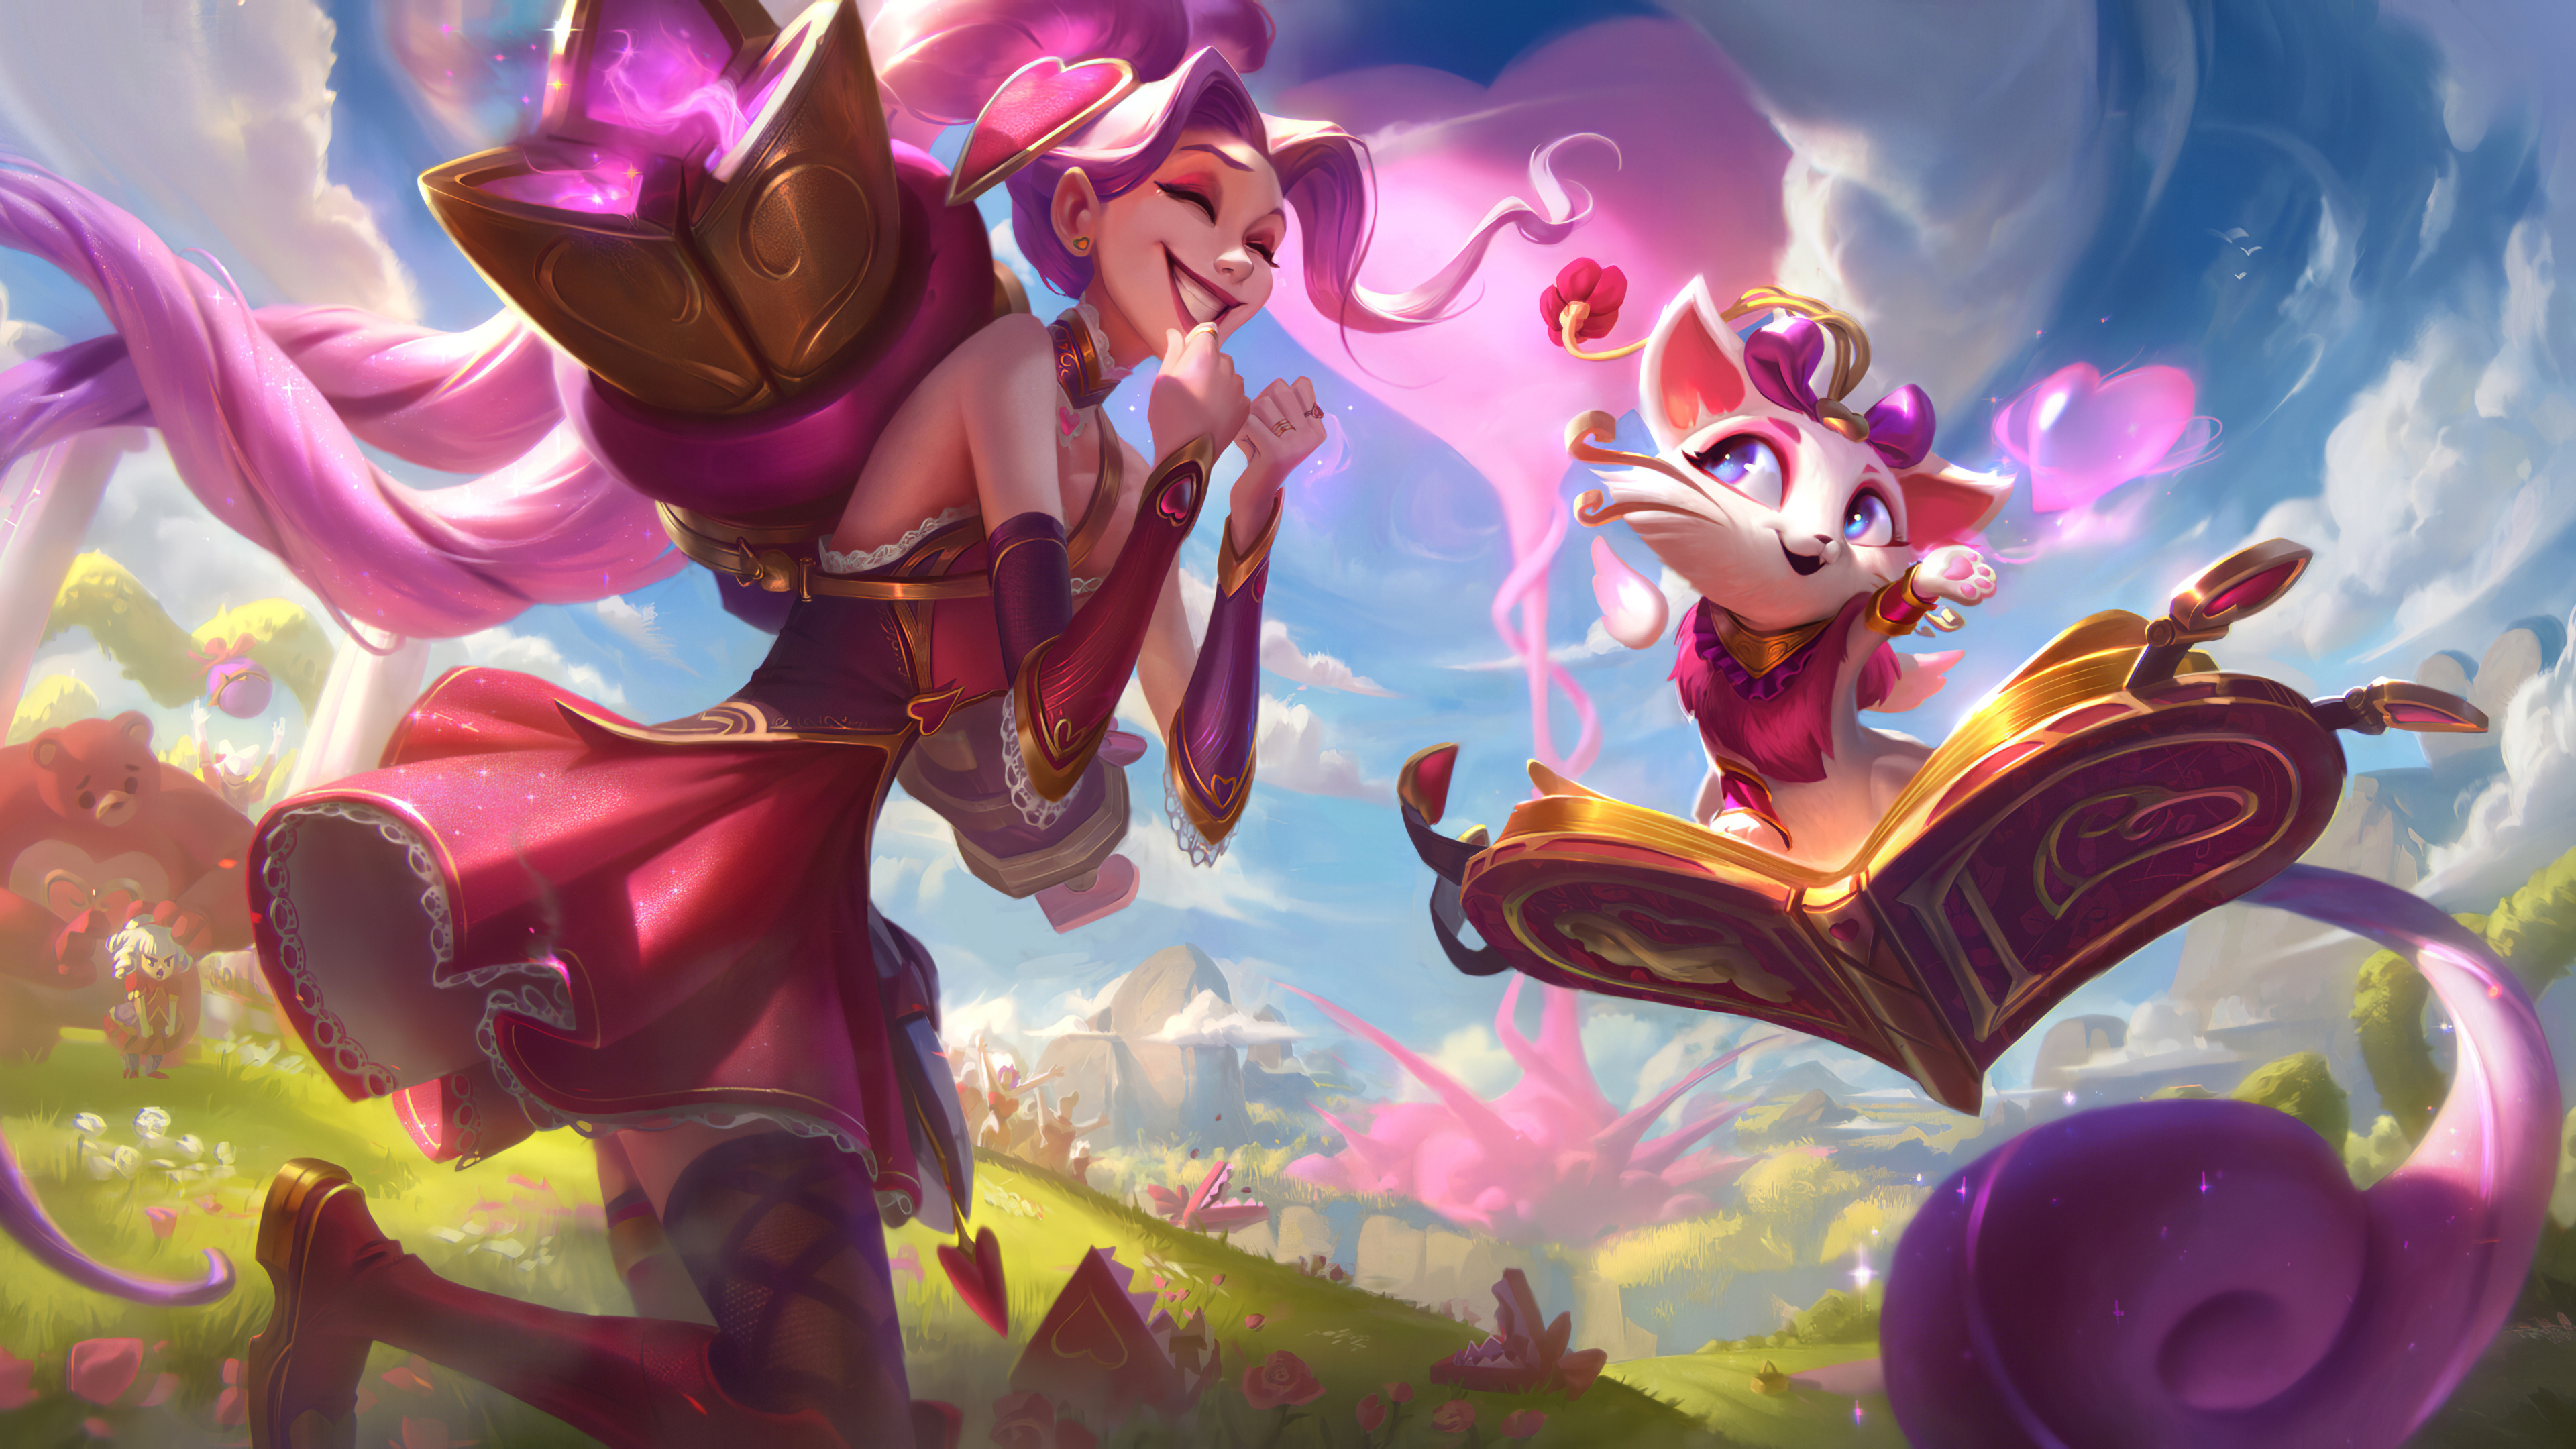 Wallpaper 4k Jinx And Yummi Jinx And Yummi 4k Wallpapers Jinx And